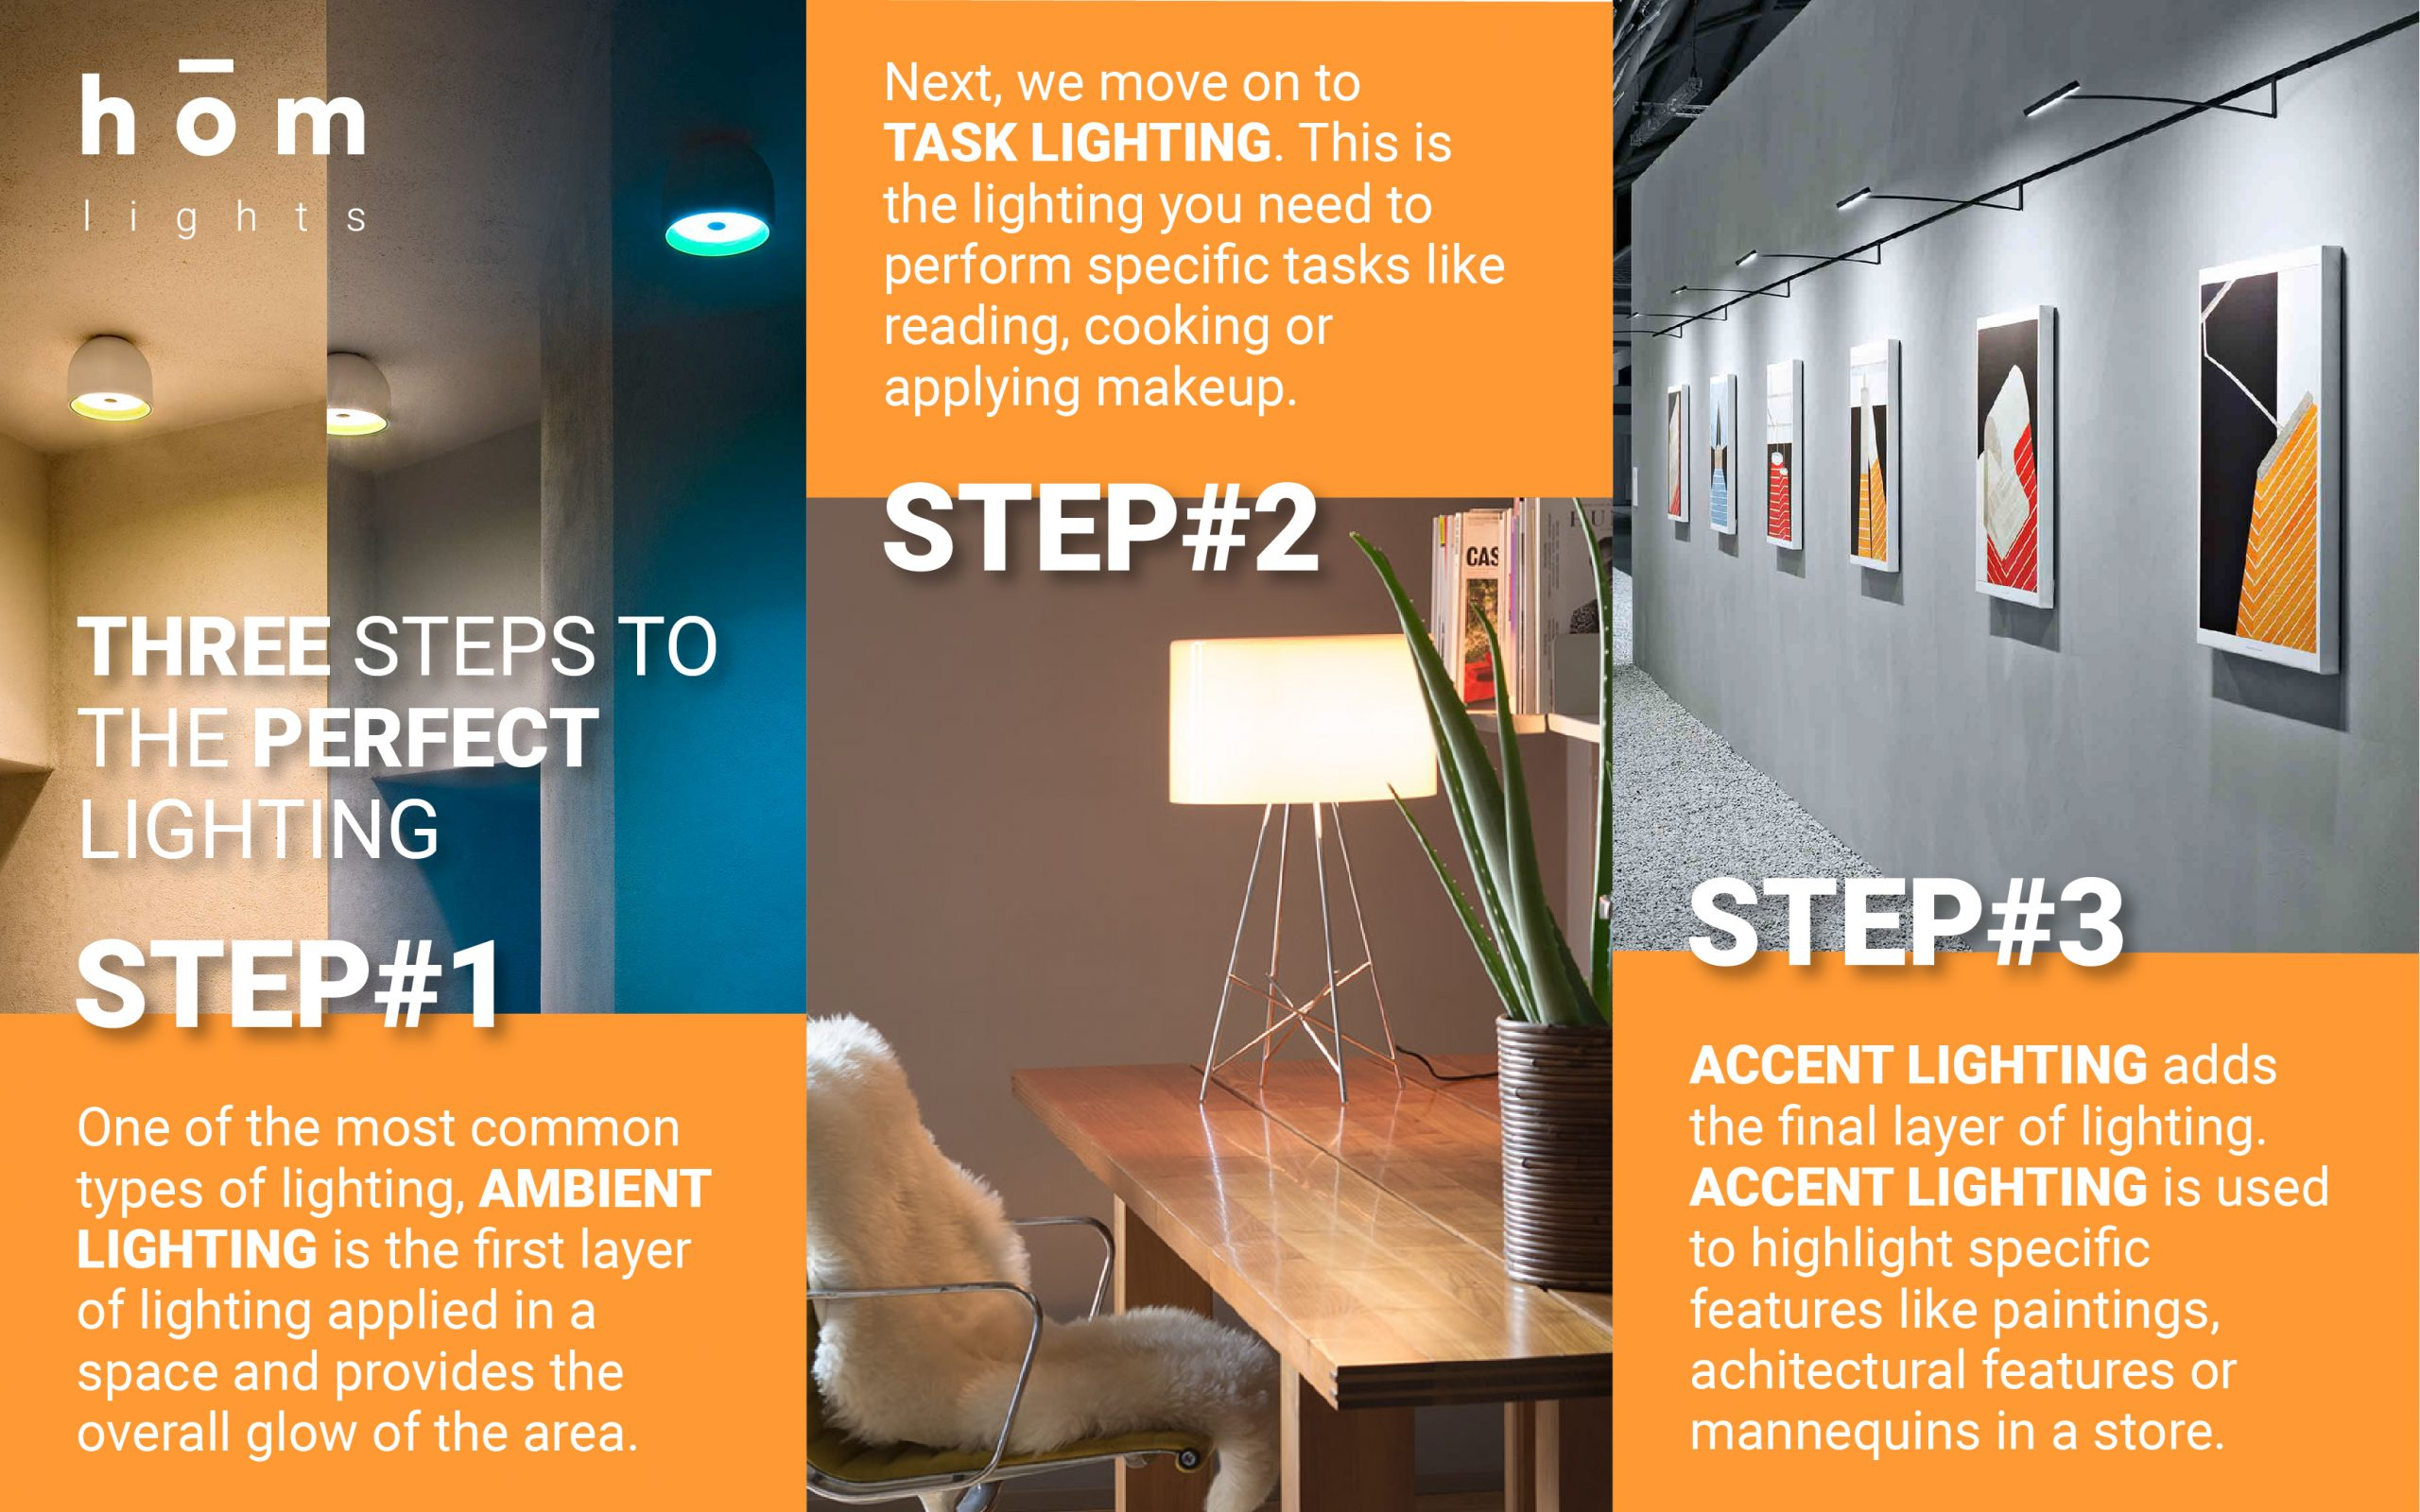 Three Steps to Perfect Lighting - Ambient Lighting - Task Lighting - Accent Lighting